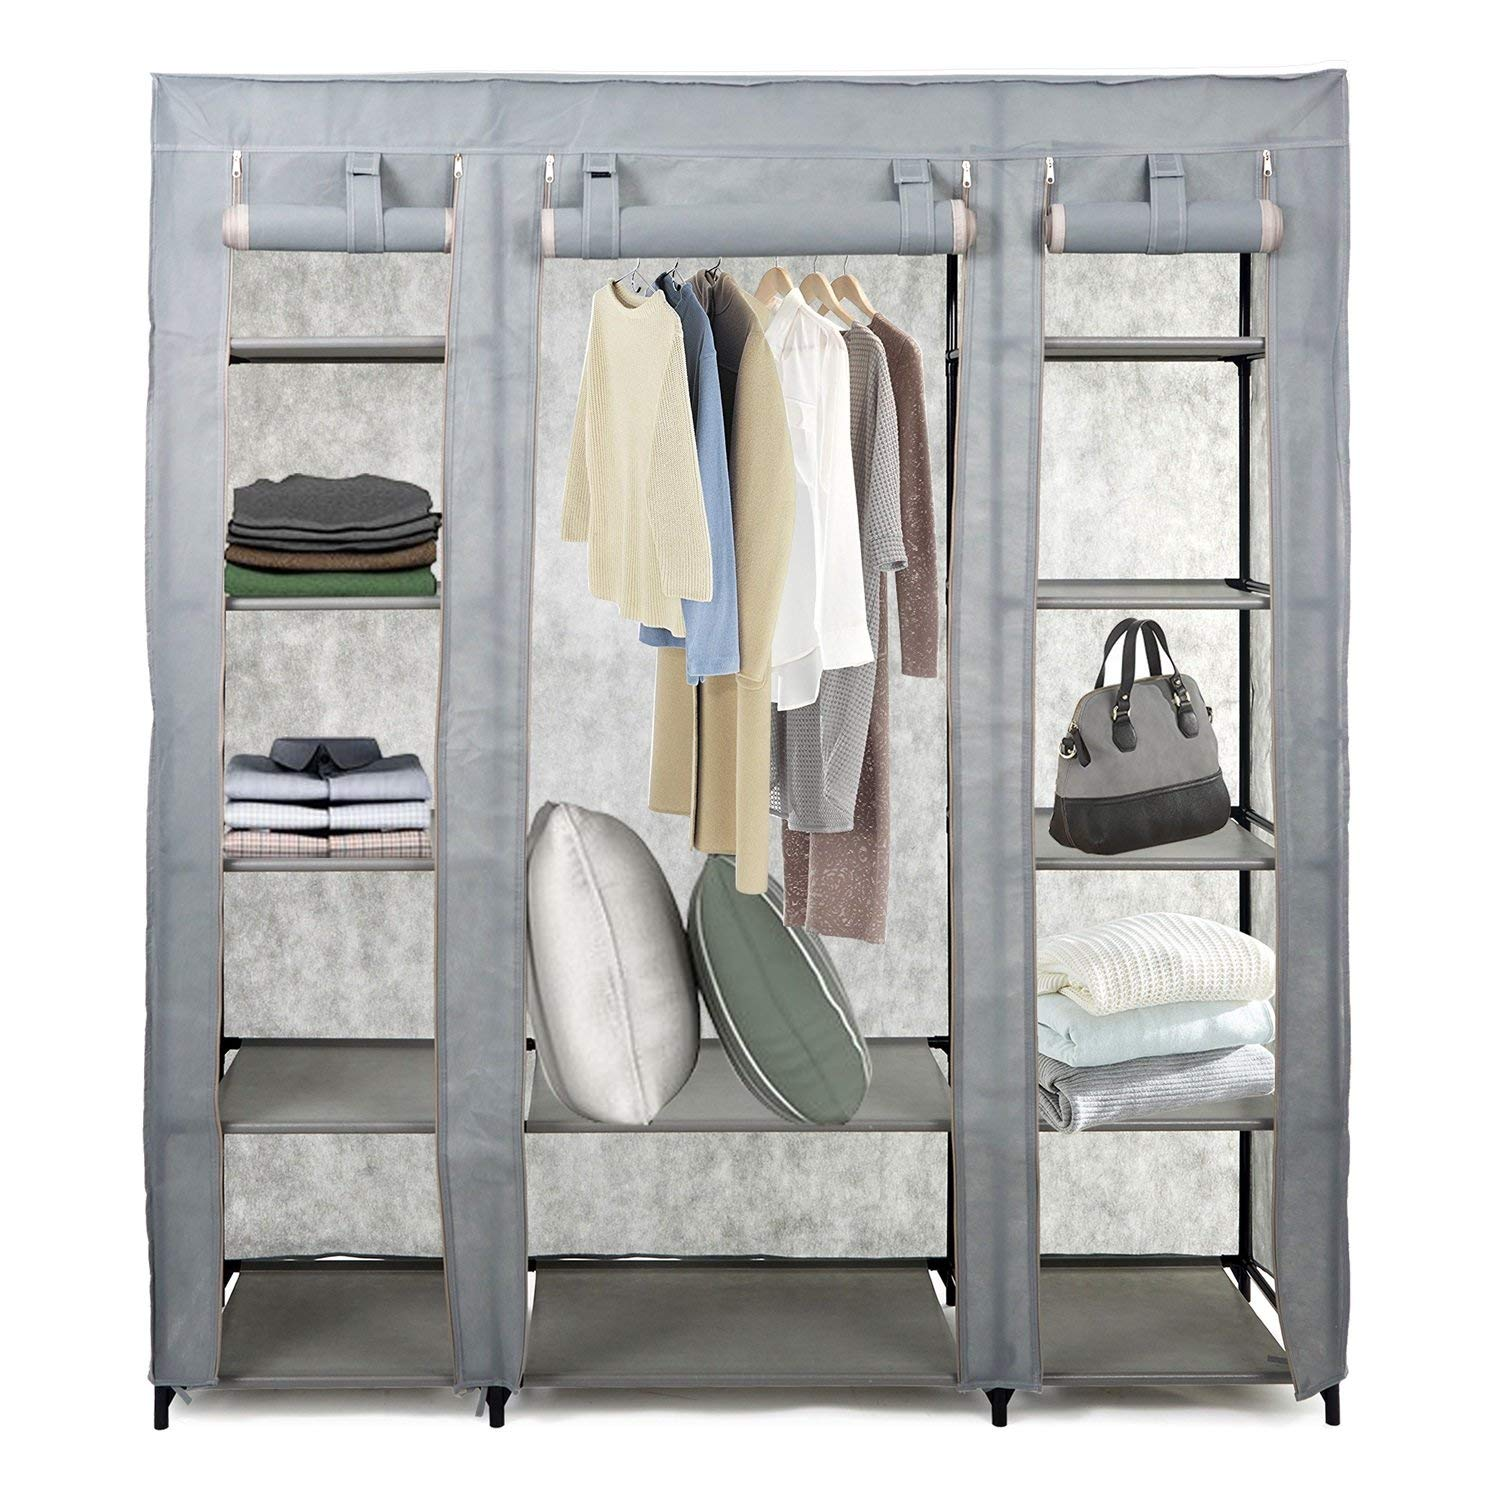 KARMAS PRODUCT 5-Tier Portable Wardrobe Clothes Closet with Non-woven Fabric and Steel Tube,Free Standing and Space Saving Closet Storage, Quick and Easy Assembly (gray)